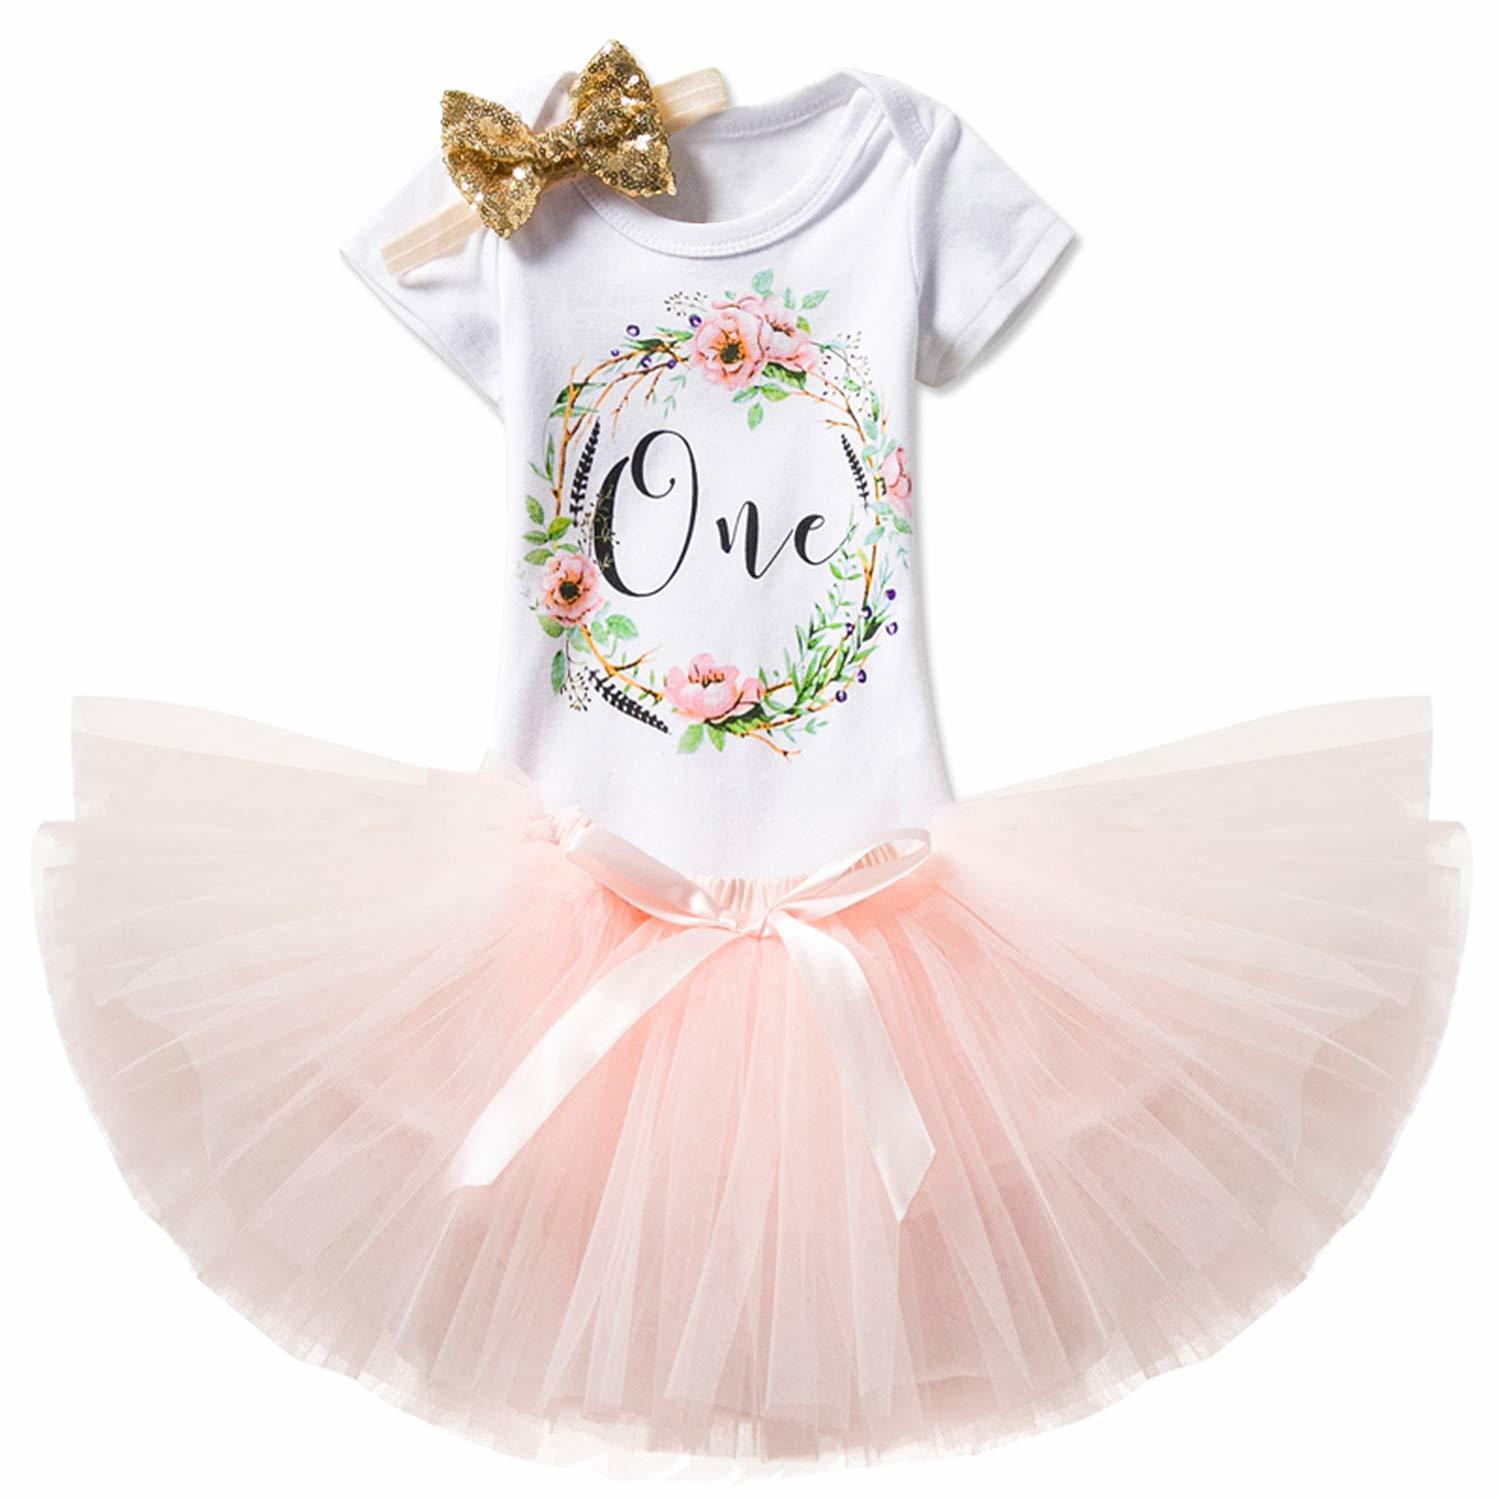 Baby Girl Clothes Cake Smash Outfit 1 Year Birthday Dress  My First